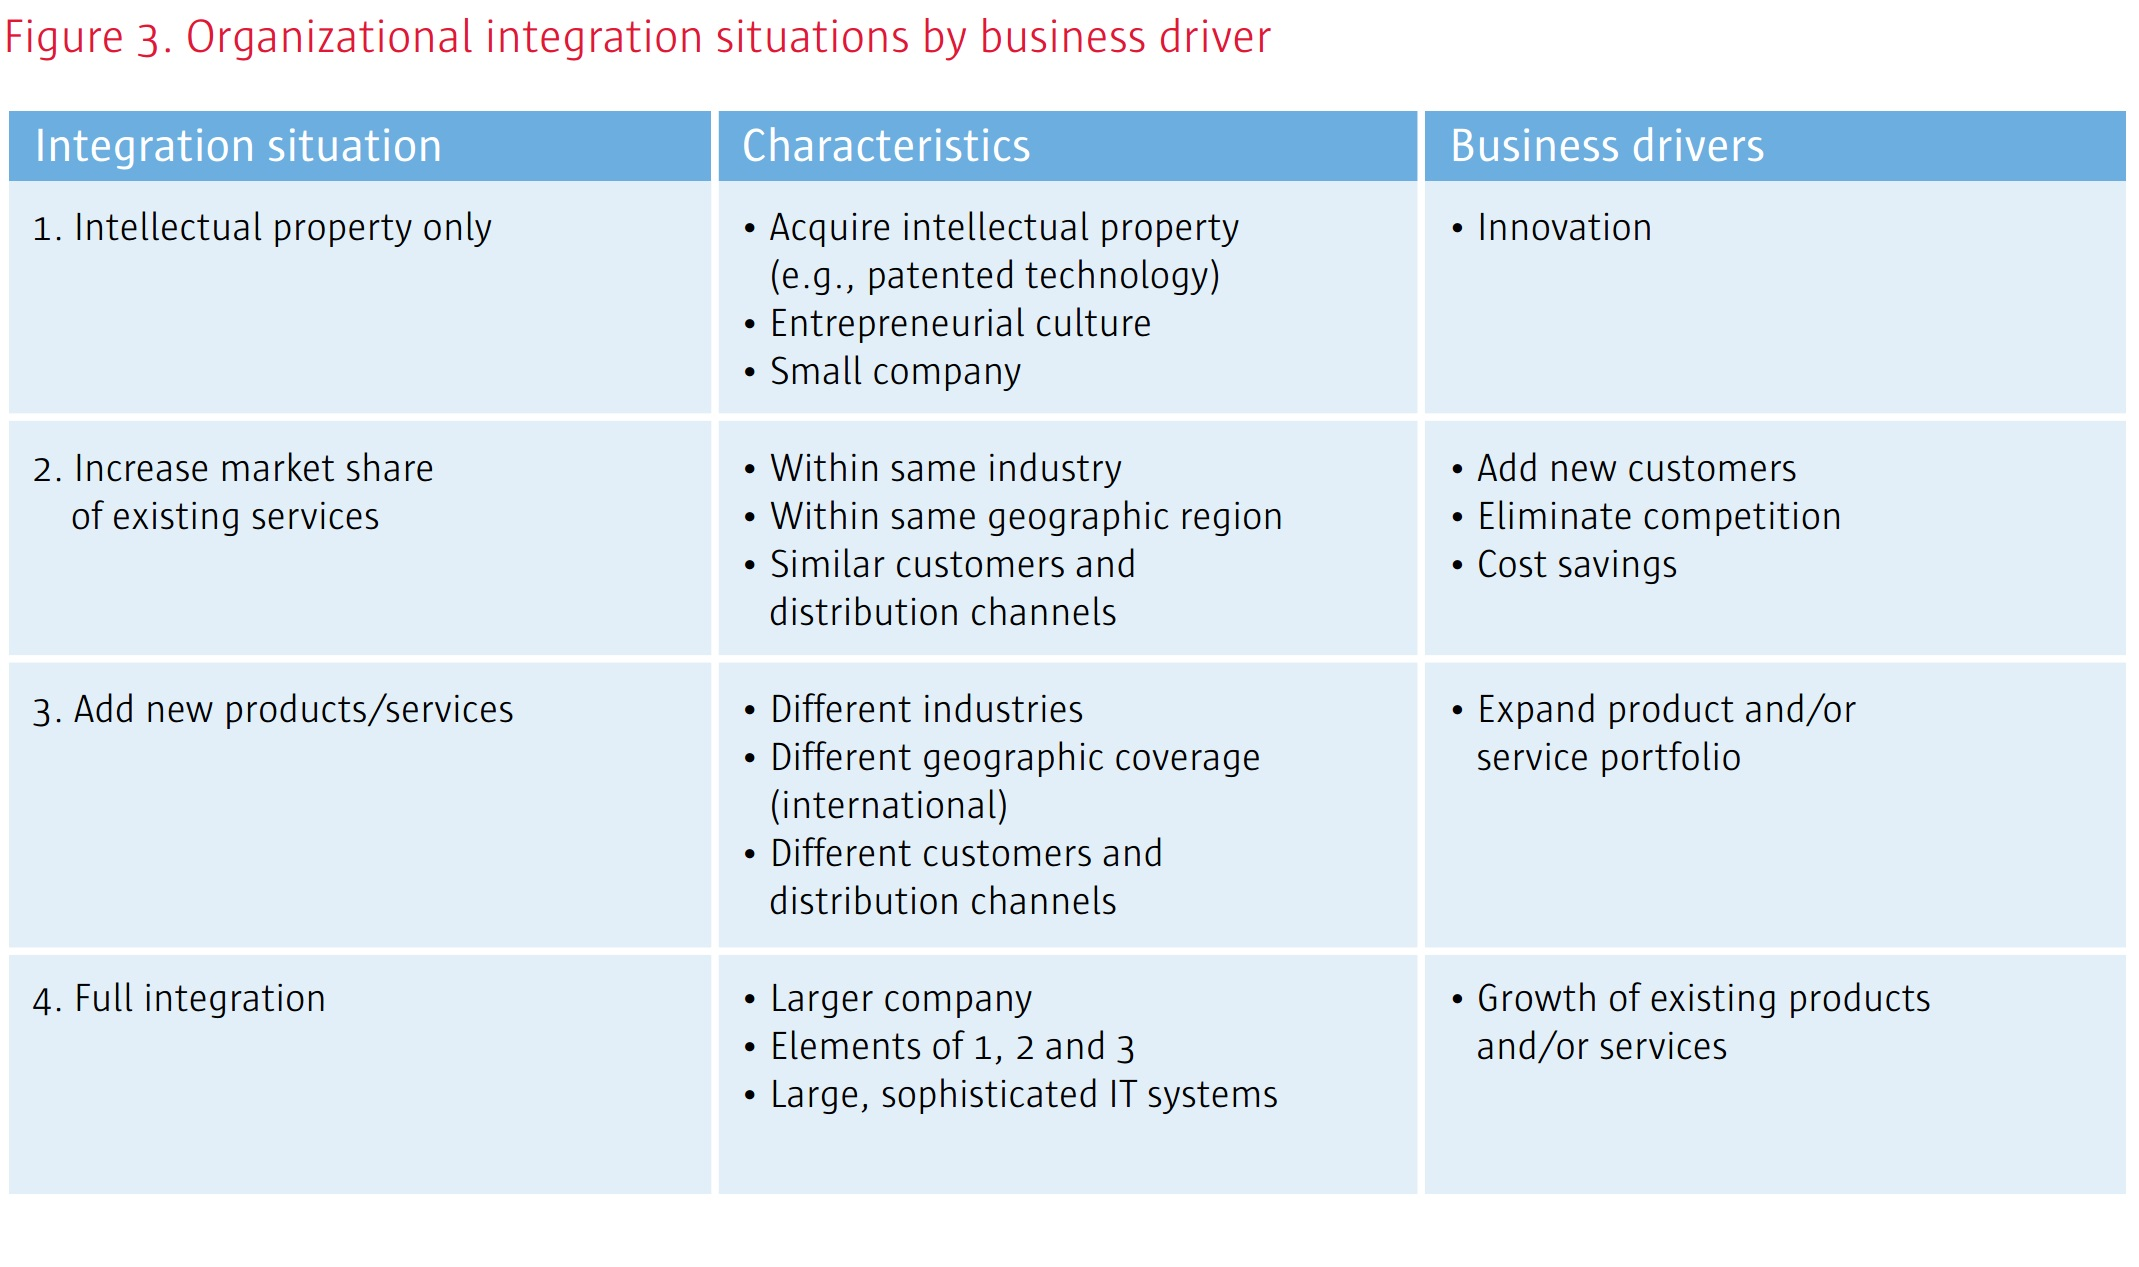 Figure 3. Organizational integration situations by business driver